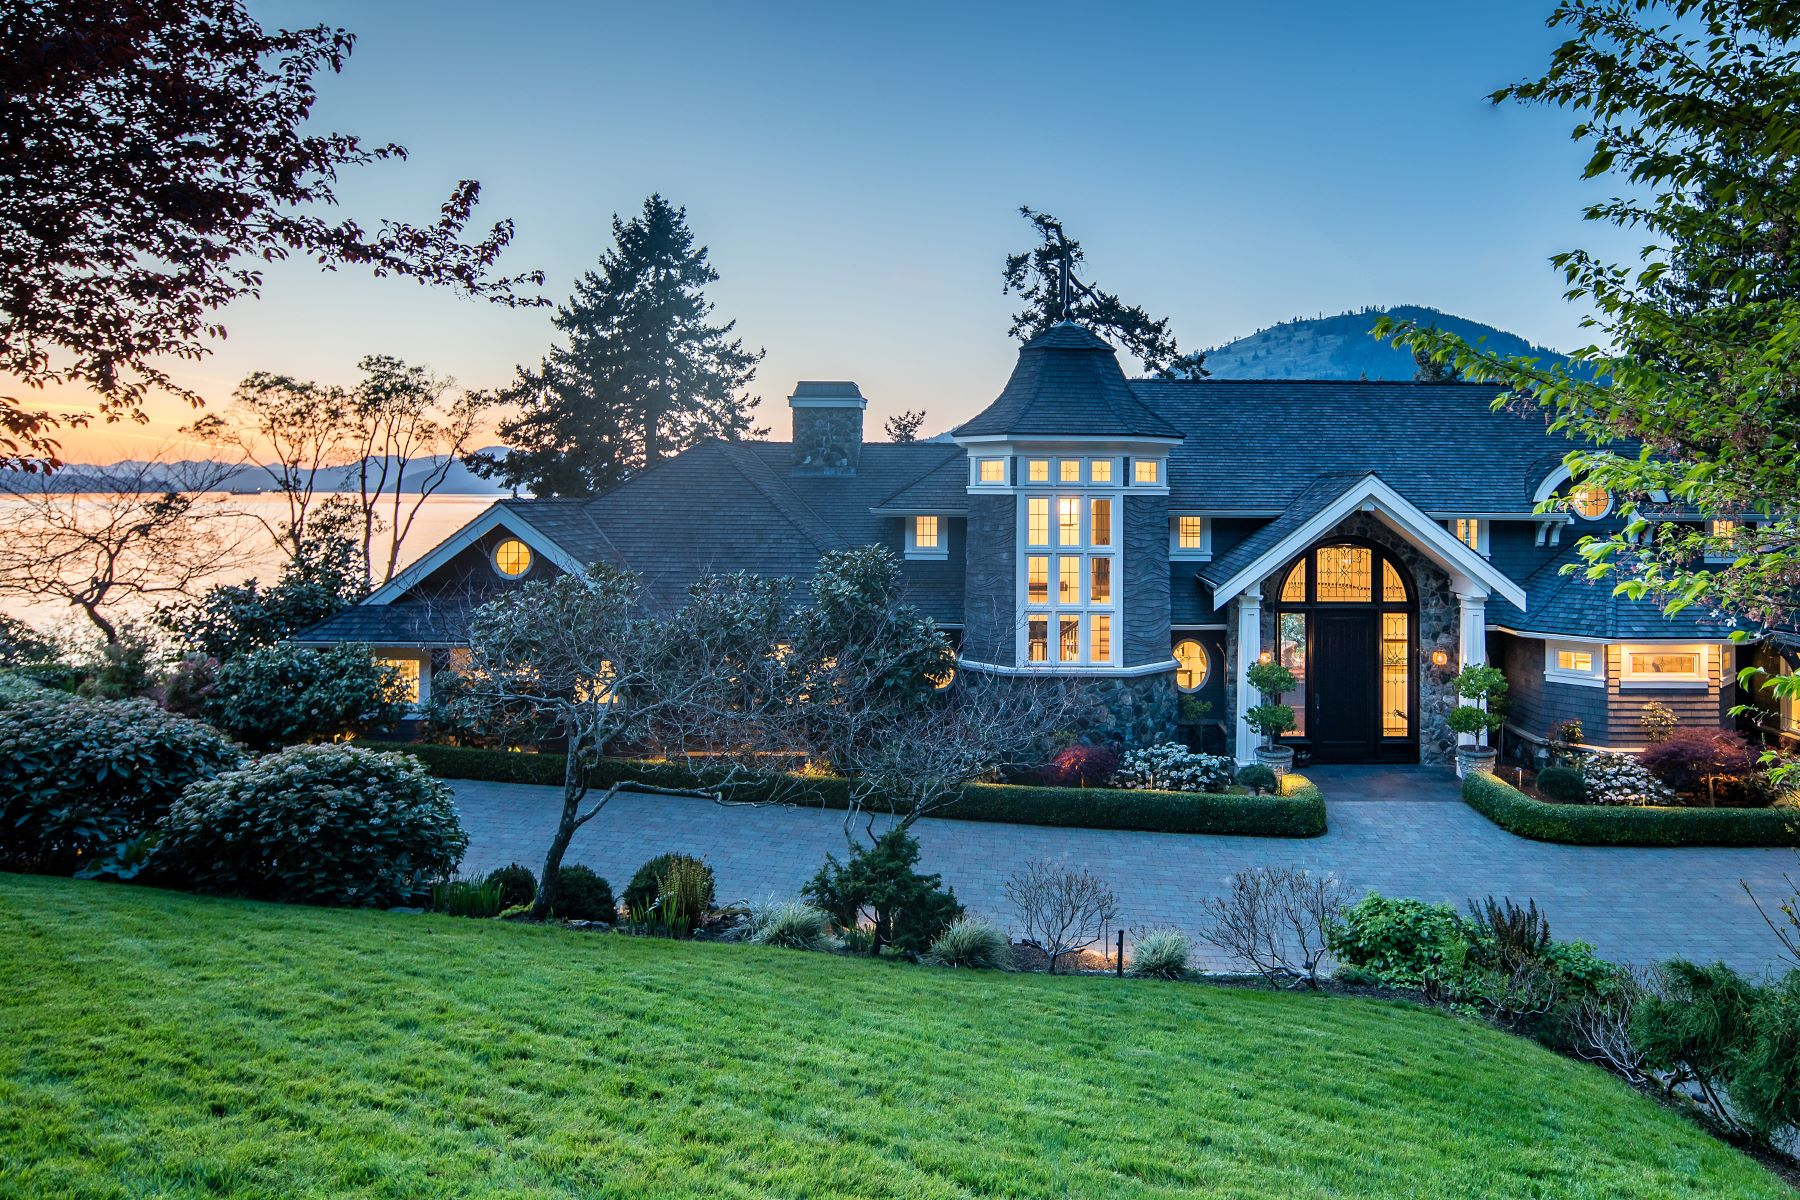 Single Family Homes for Sale at Luxurious Oceanfront Estate 528 & 538 Land's End Road Victoria, British Columbia V8L 5L9 Canada